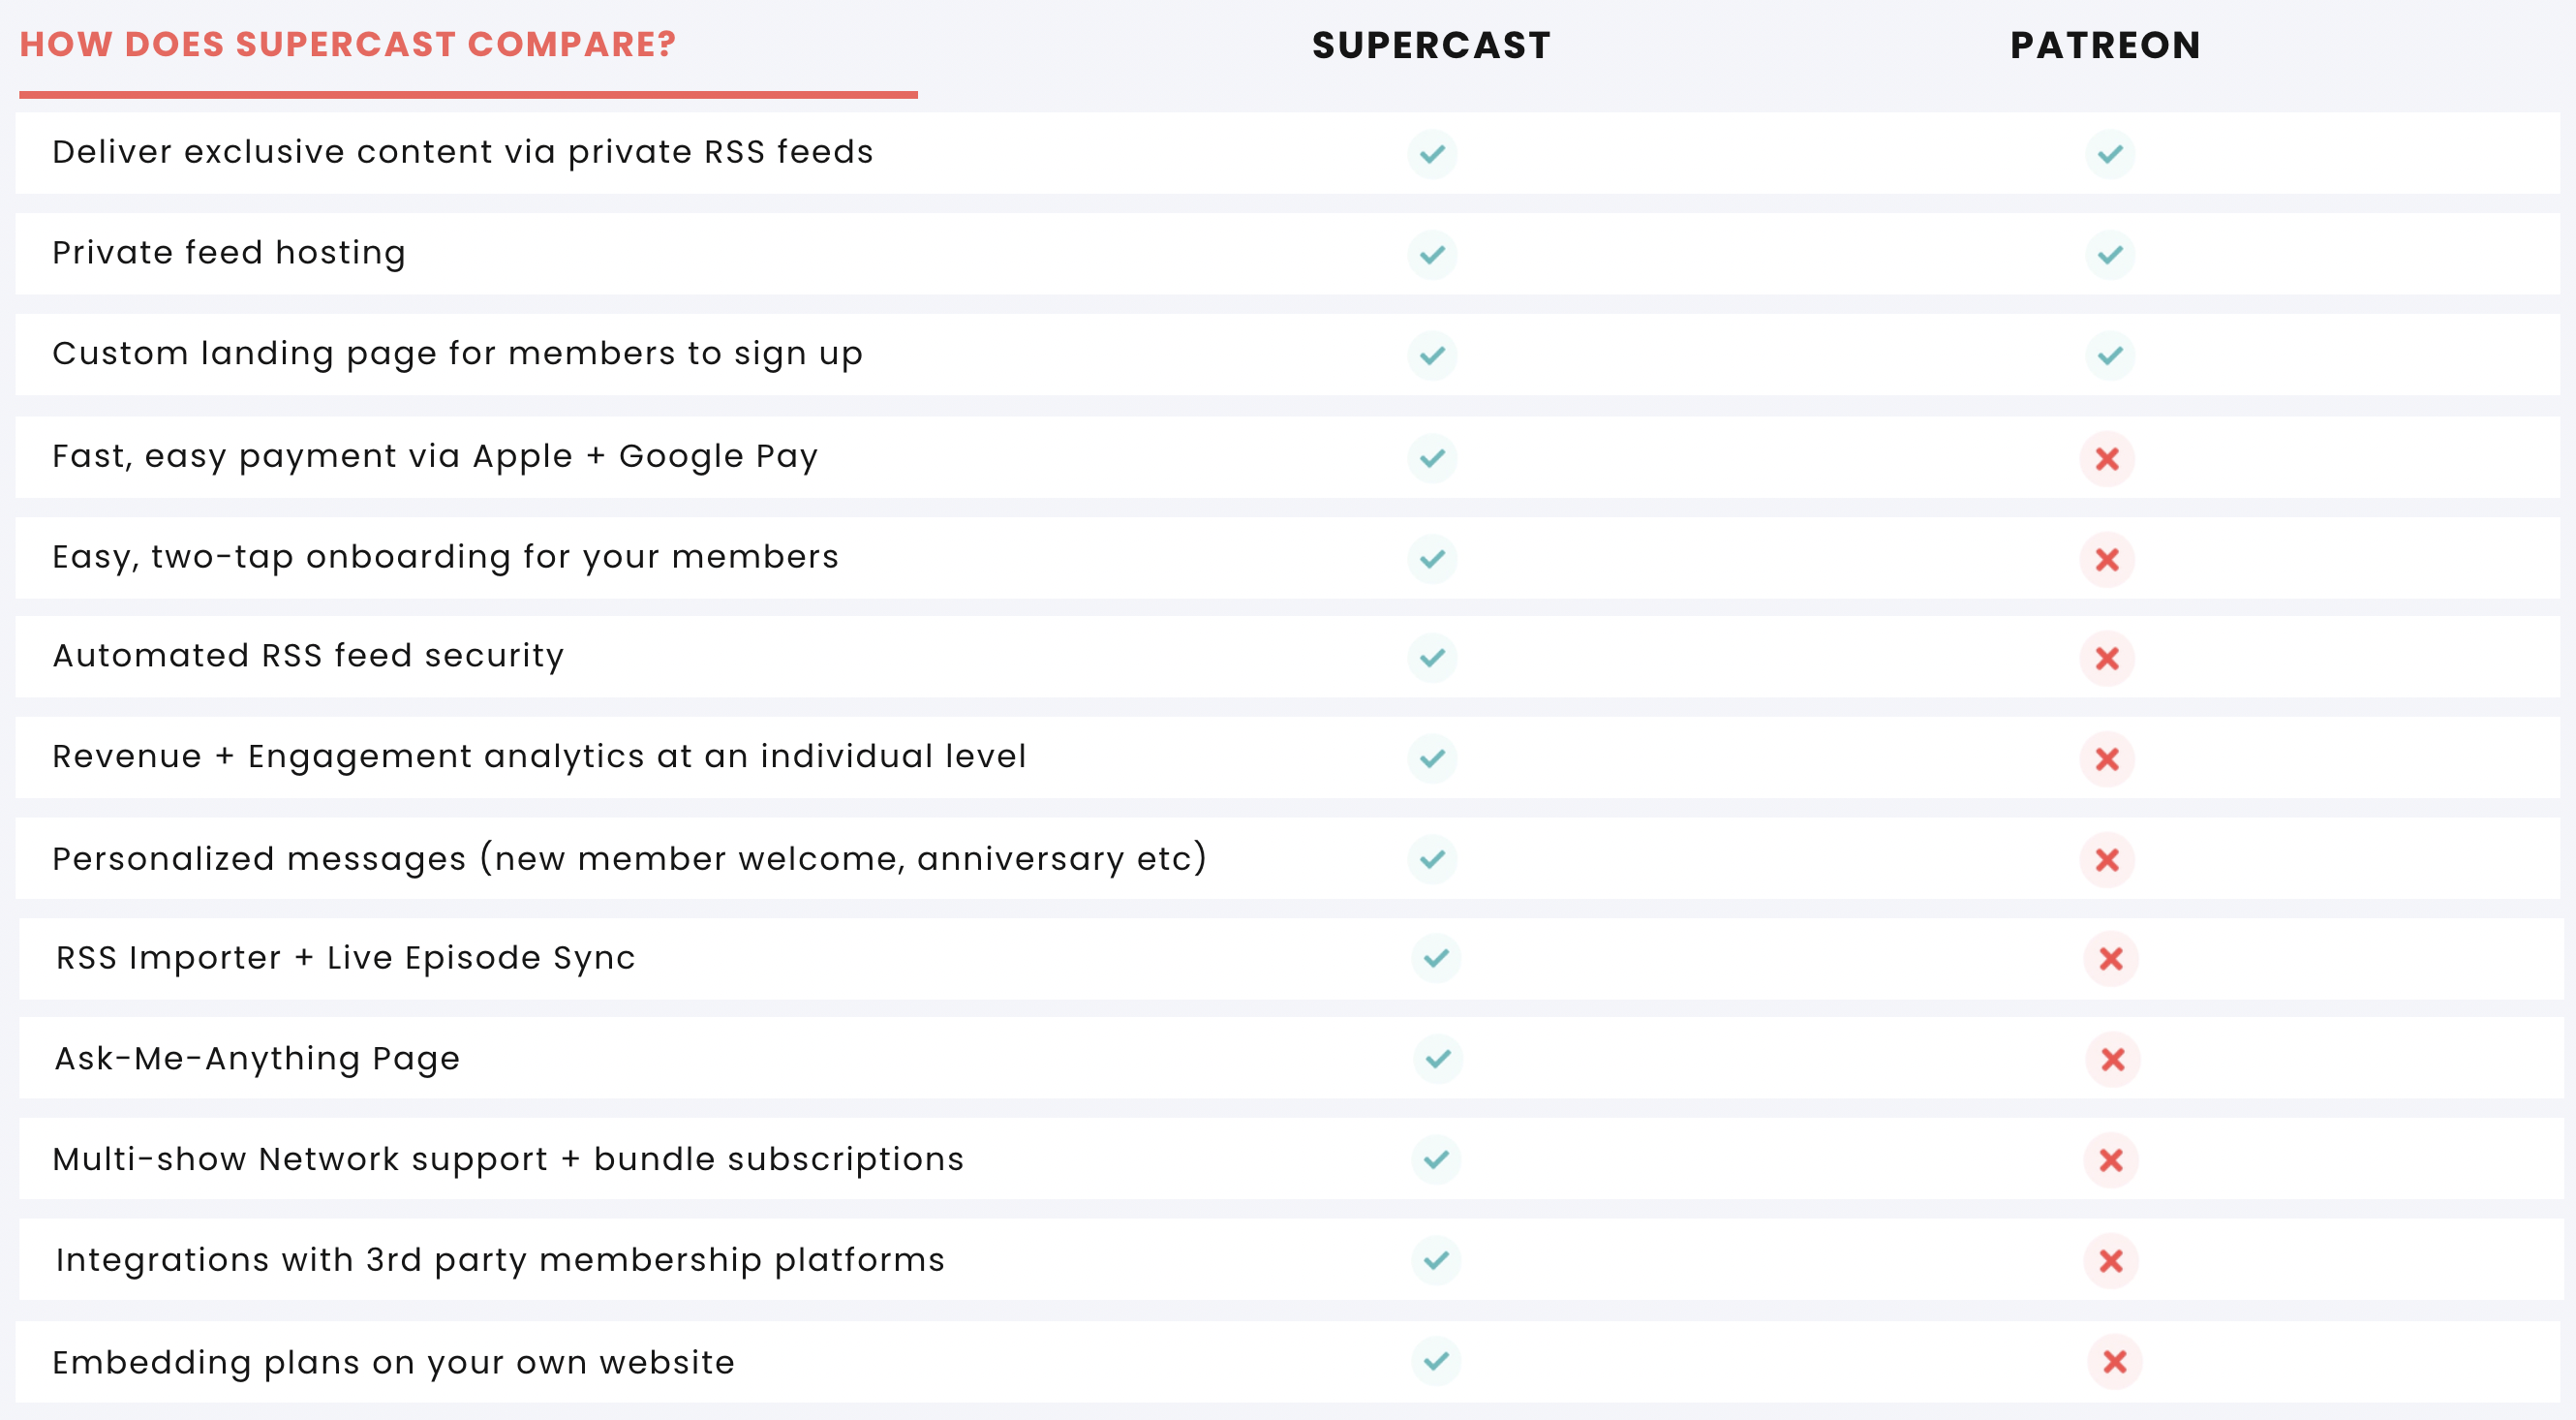 Chart Comparing Supercast to Patreon